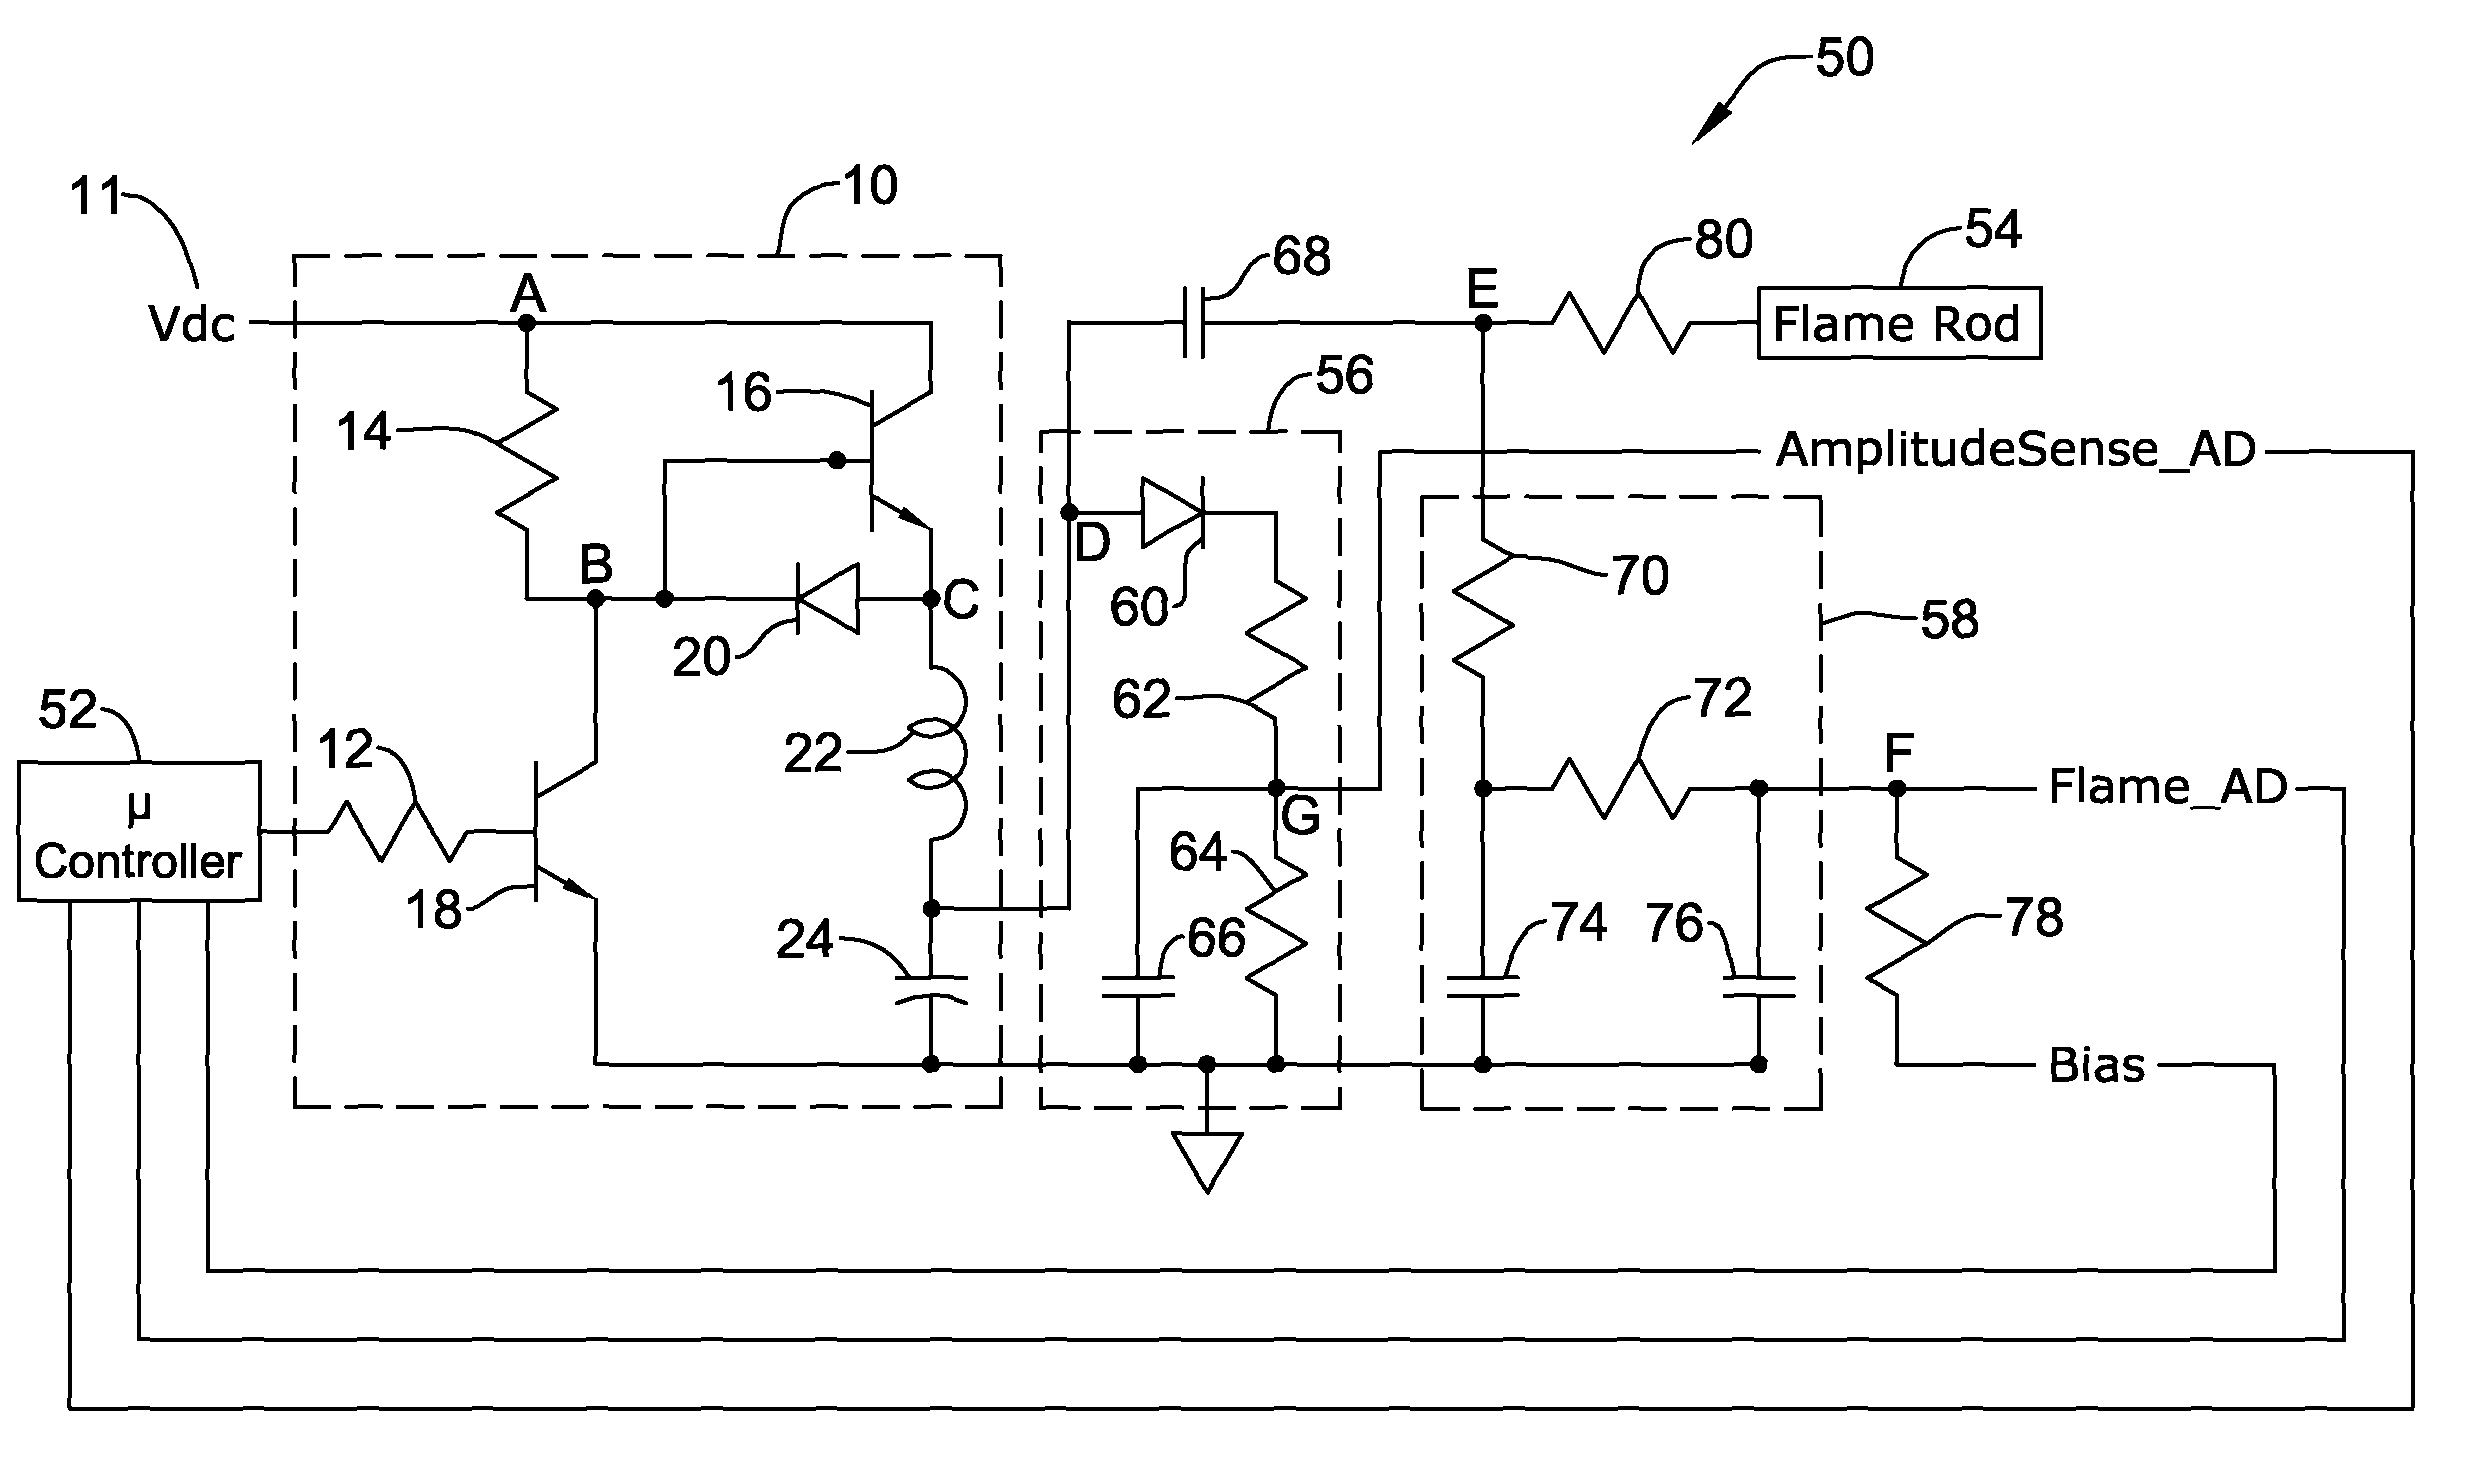 US08085521 20111227 D00000 patent us8085521 flame rod drive signal generator and system flame sensor wiring diagram at suagrazia.org